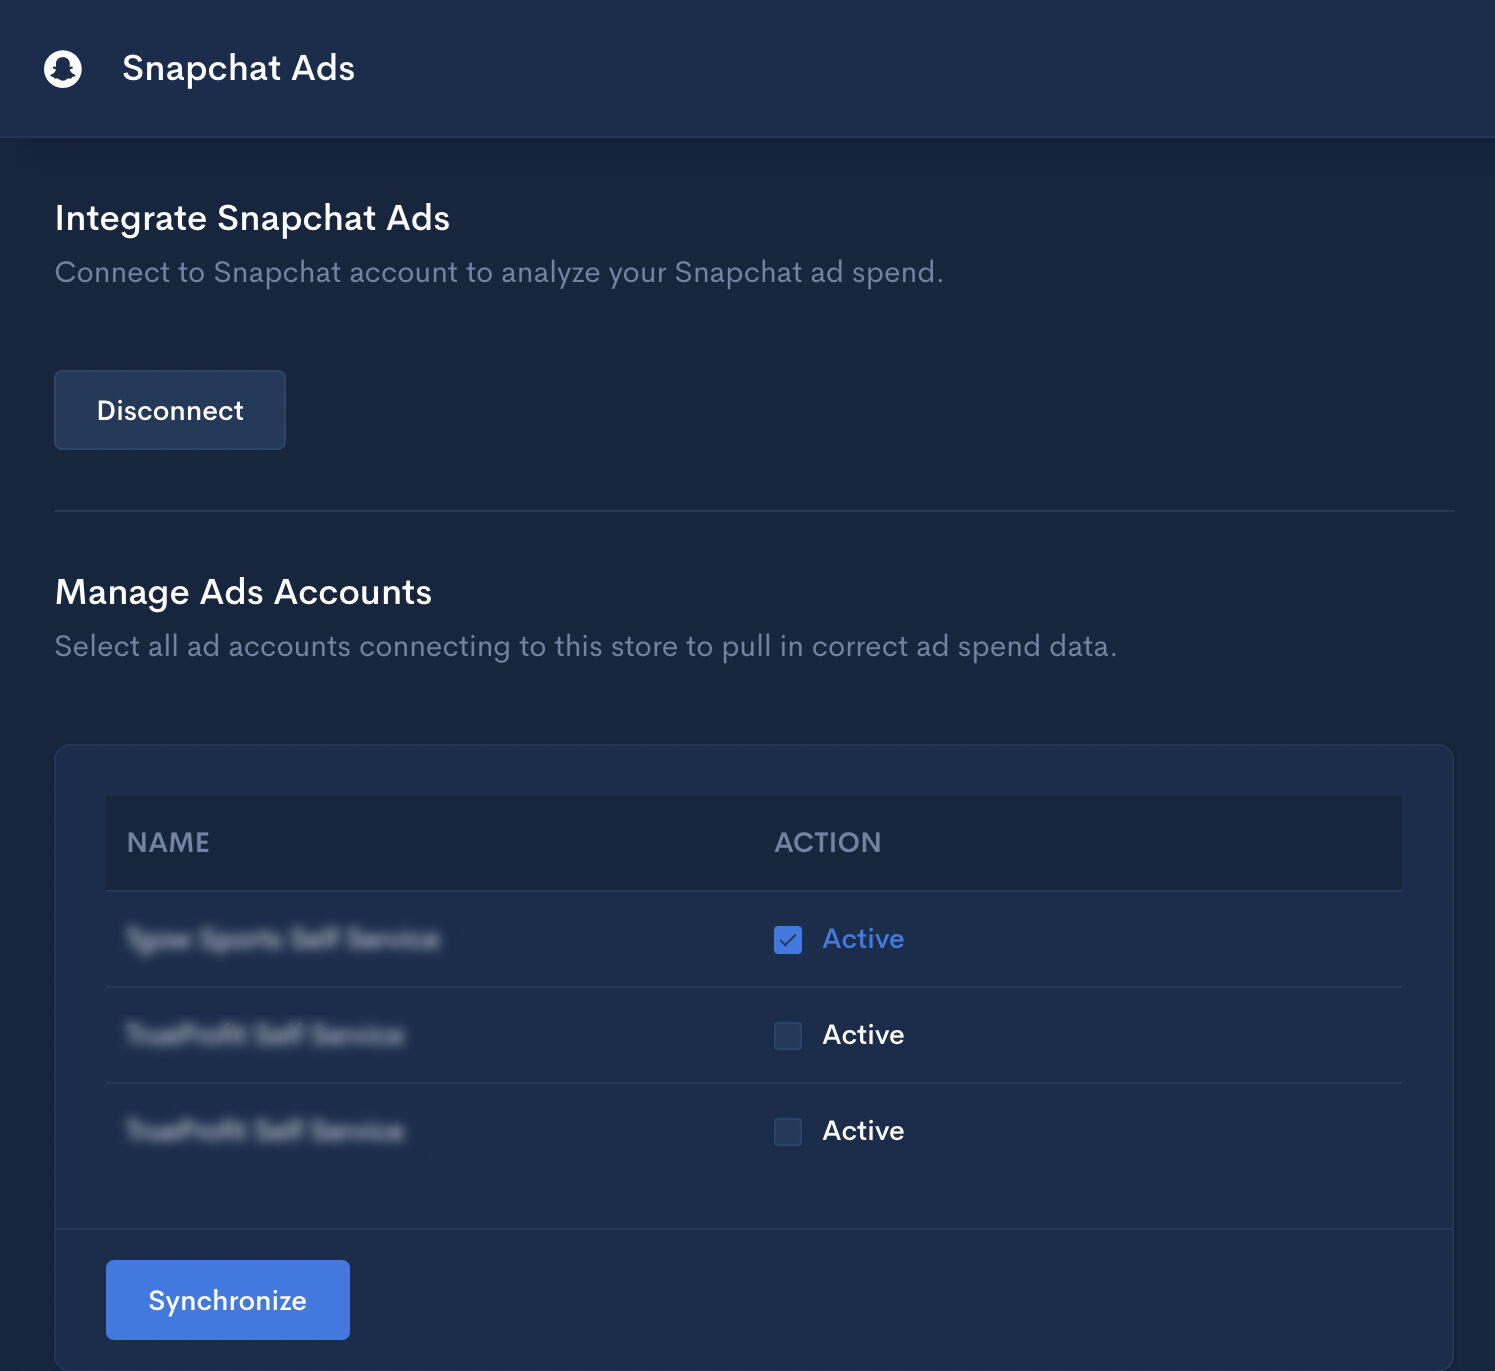 Manage Snapchat Ads Accounts